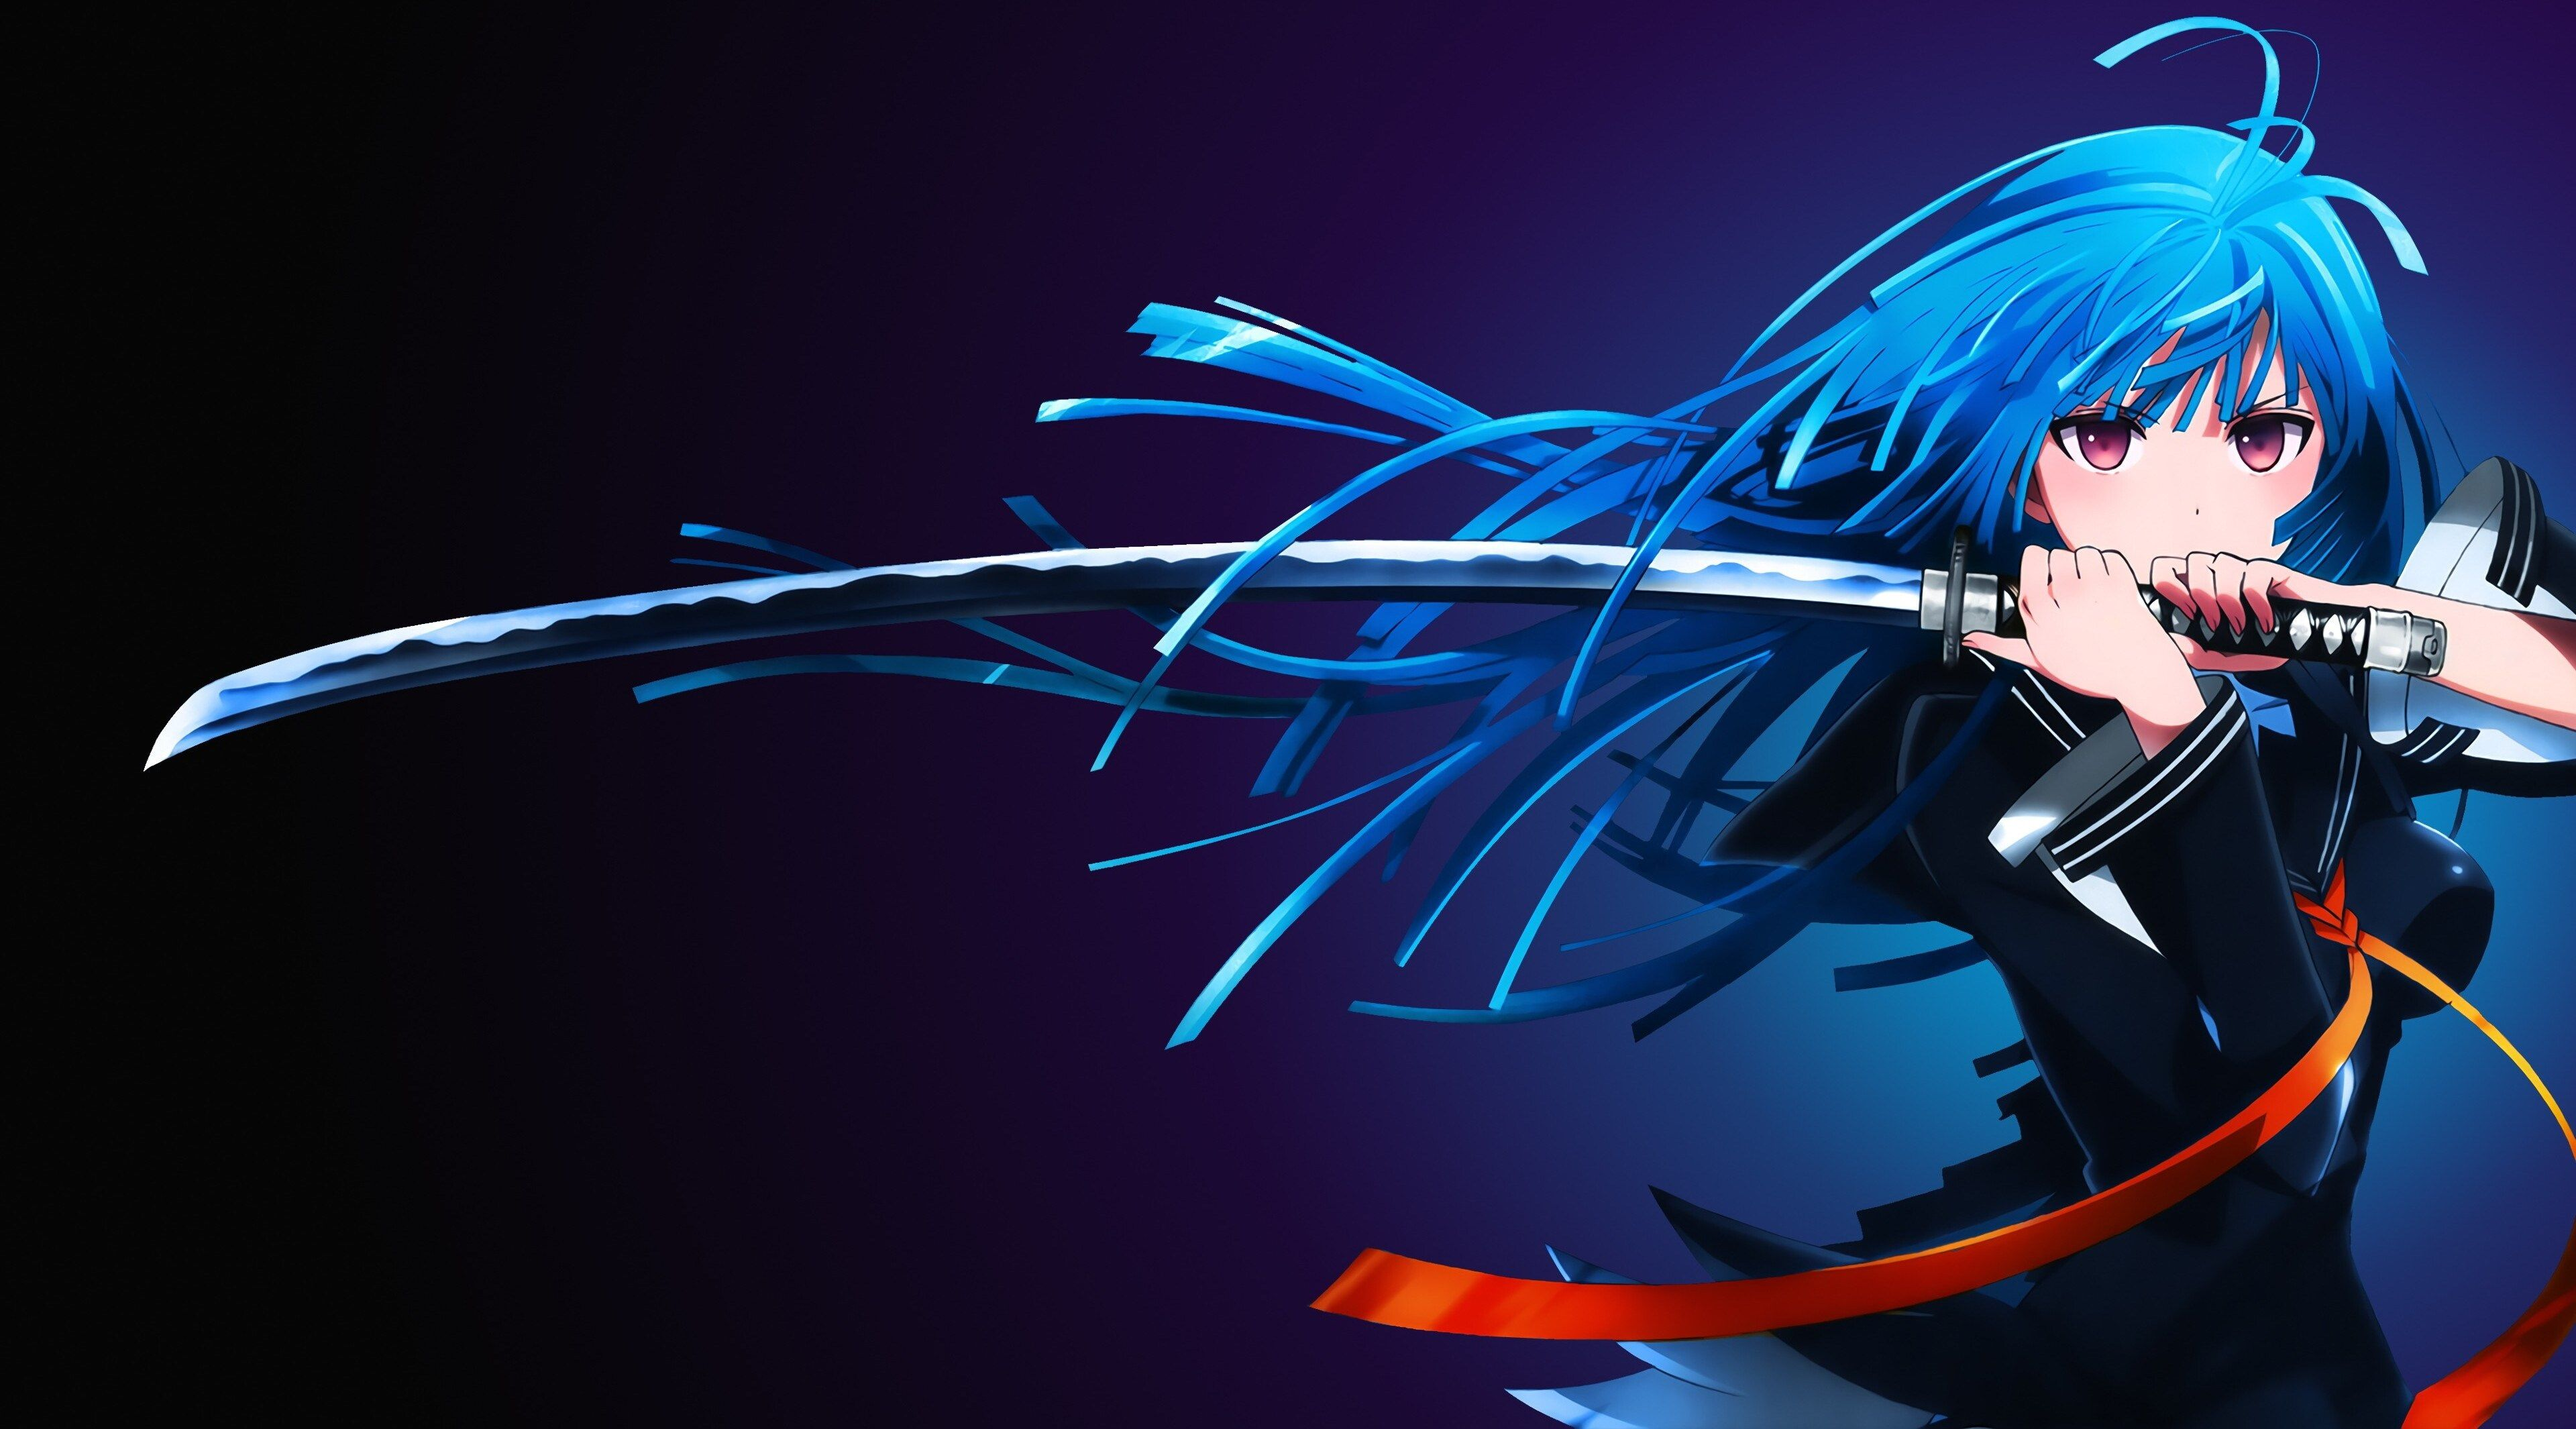 3840x2130 Anime 4k Wallpaper In Hd For Pc Gadis Animasi Gambar Anime Katana